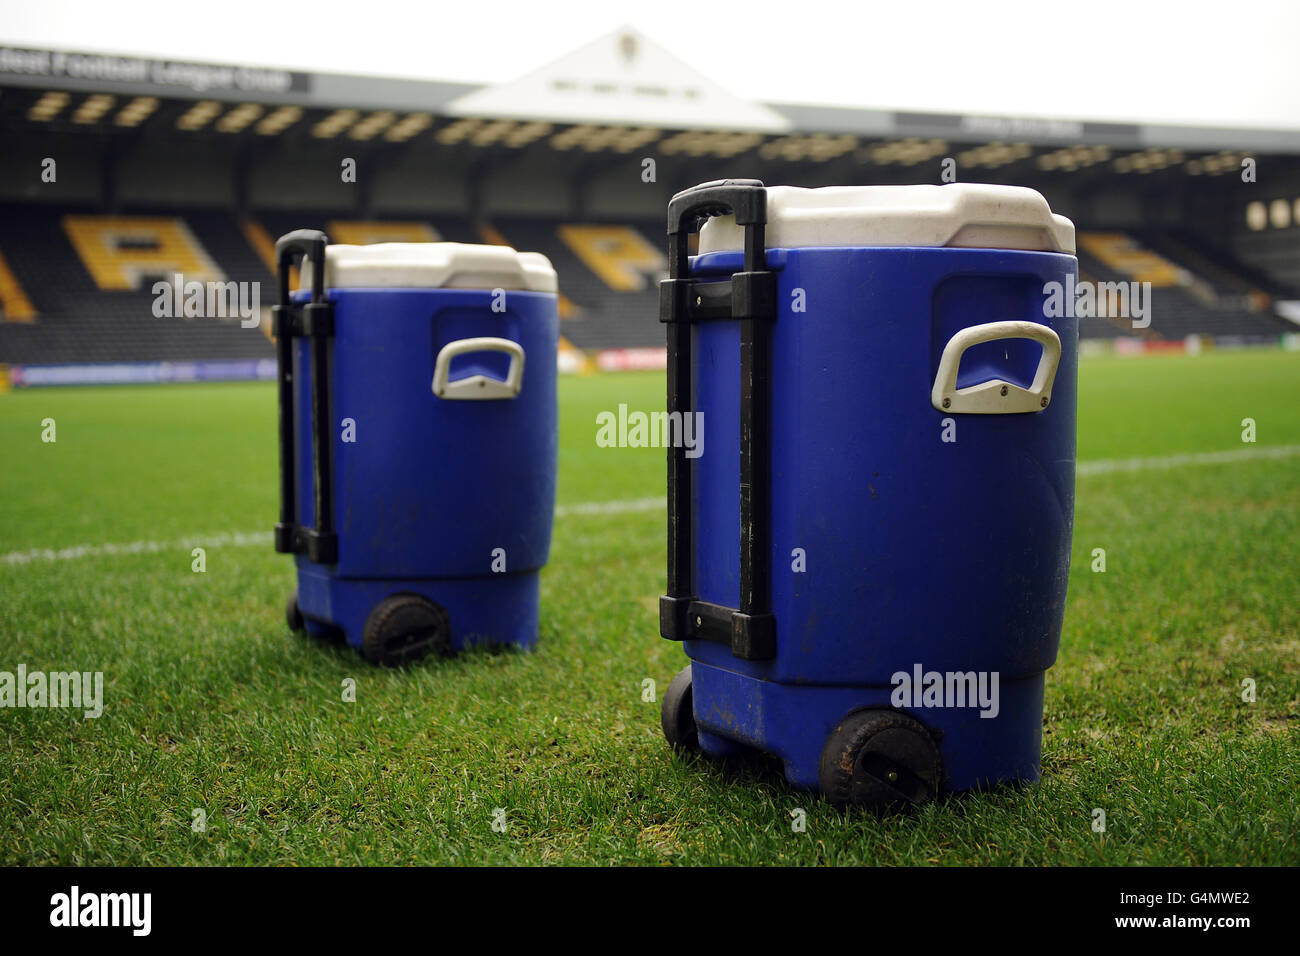 - Football npower Football League One - Notts County v Wycombe Wanderers - Meadow Lane Banque D'Images